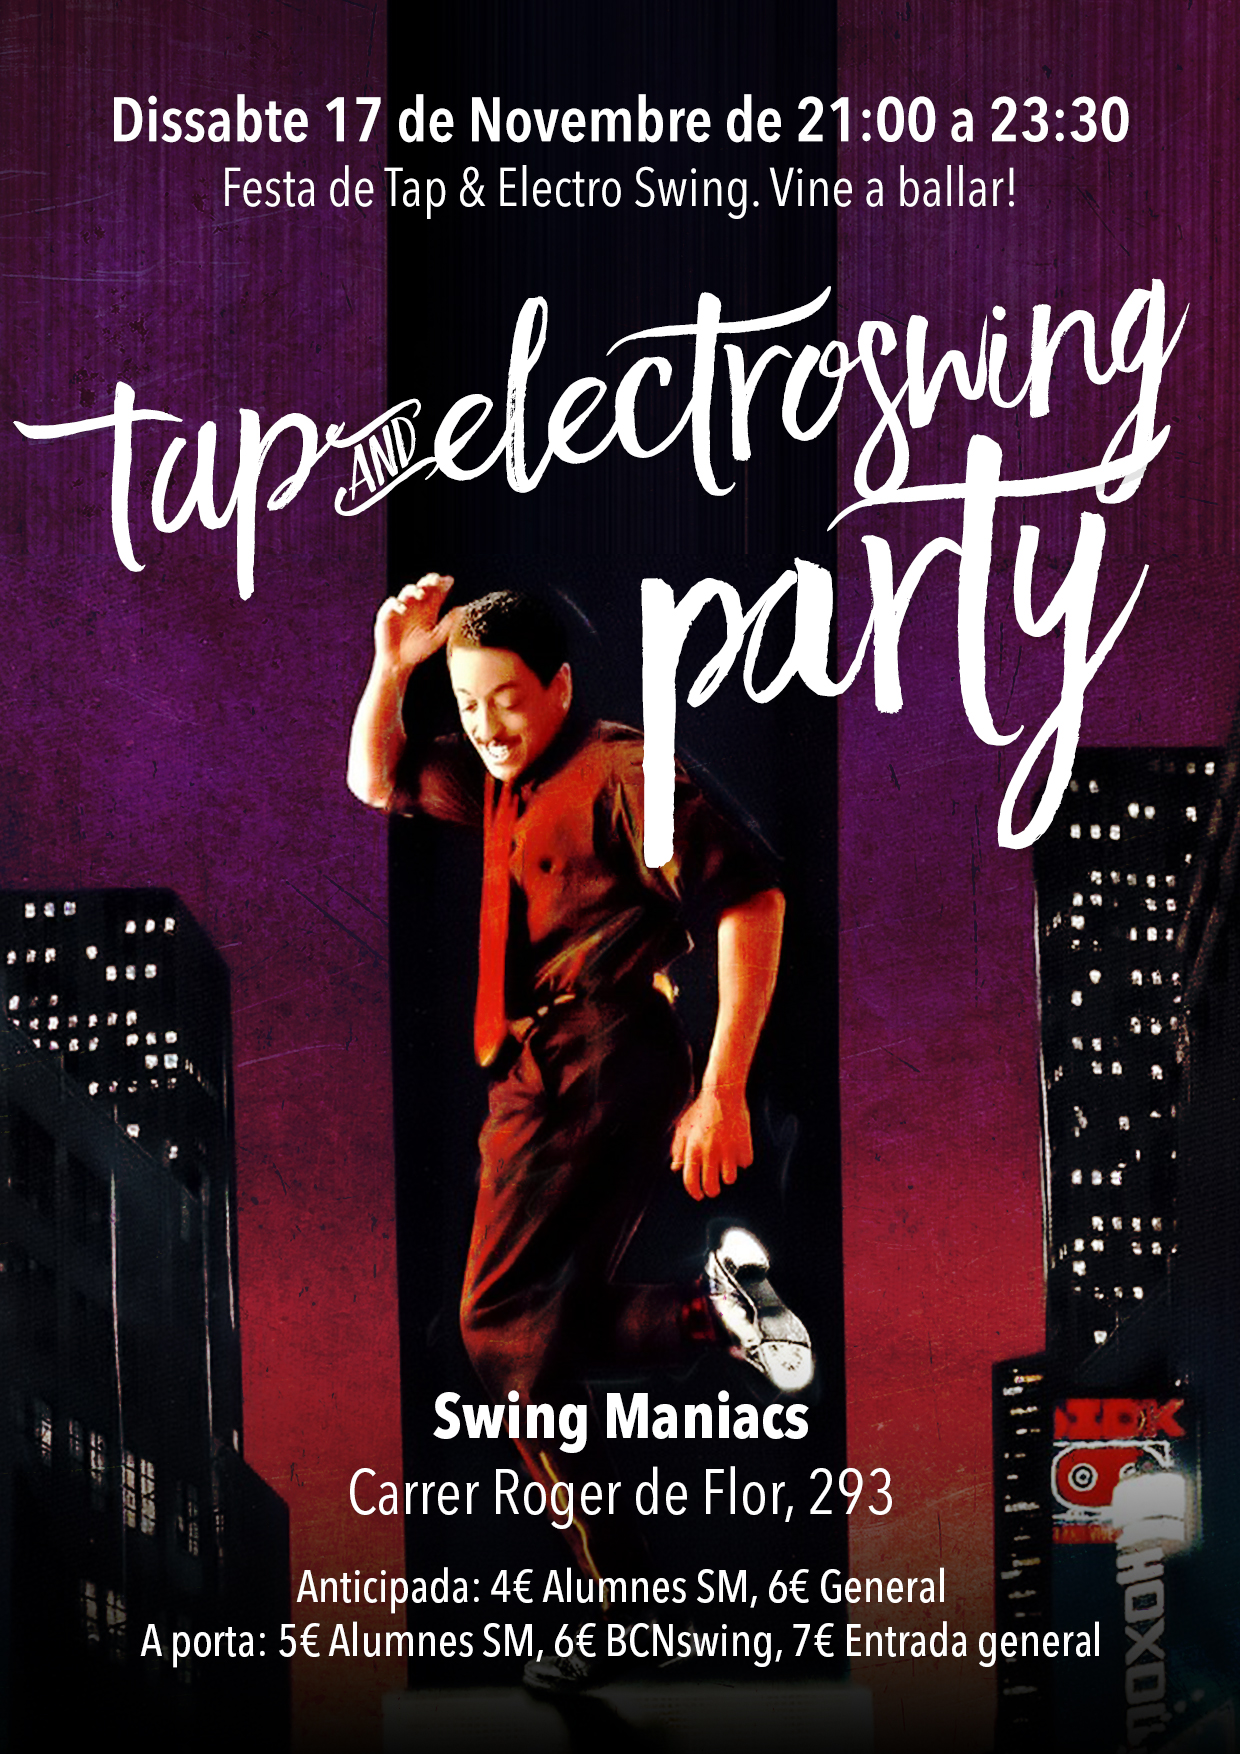 Tap and electroswing Party!